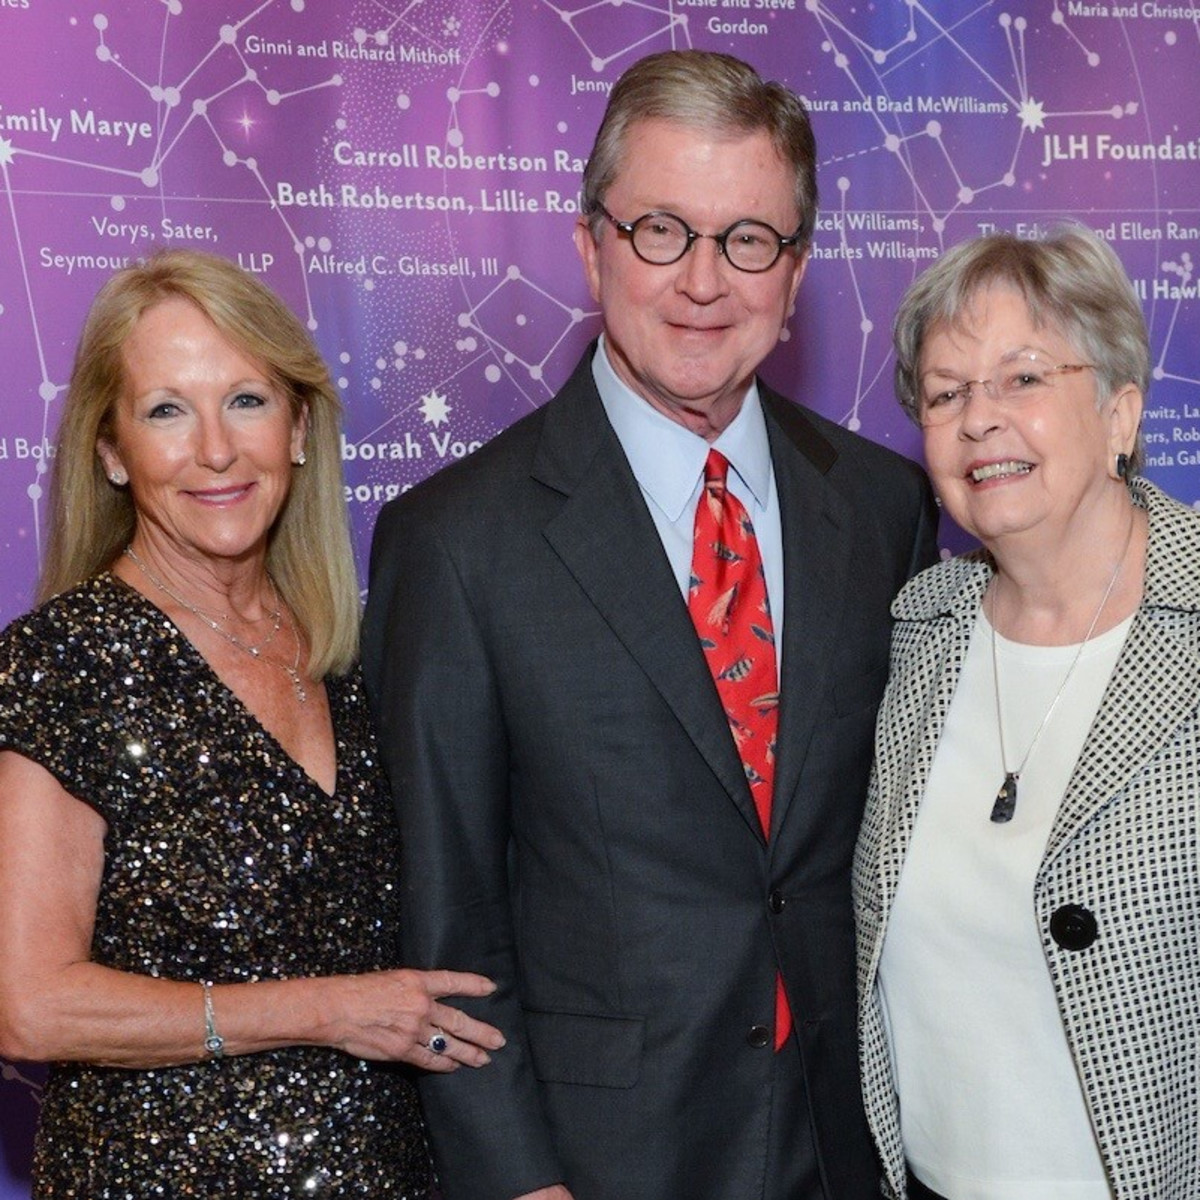 Kathy O'Neil, Phil Ferguson, Kathrine McGovern at UTHealth Constellation Gala